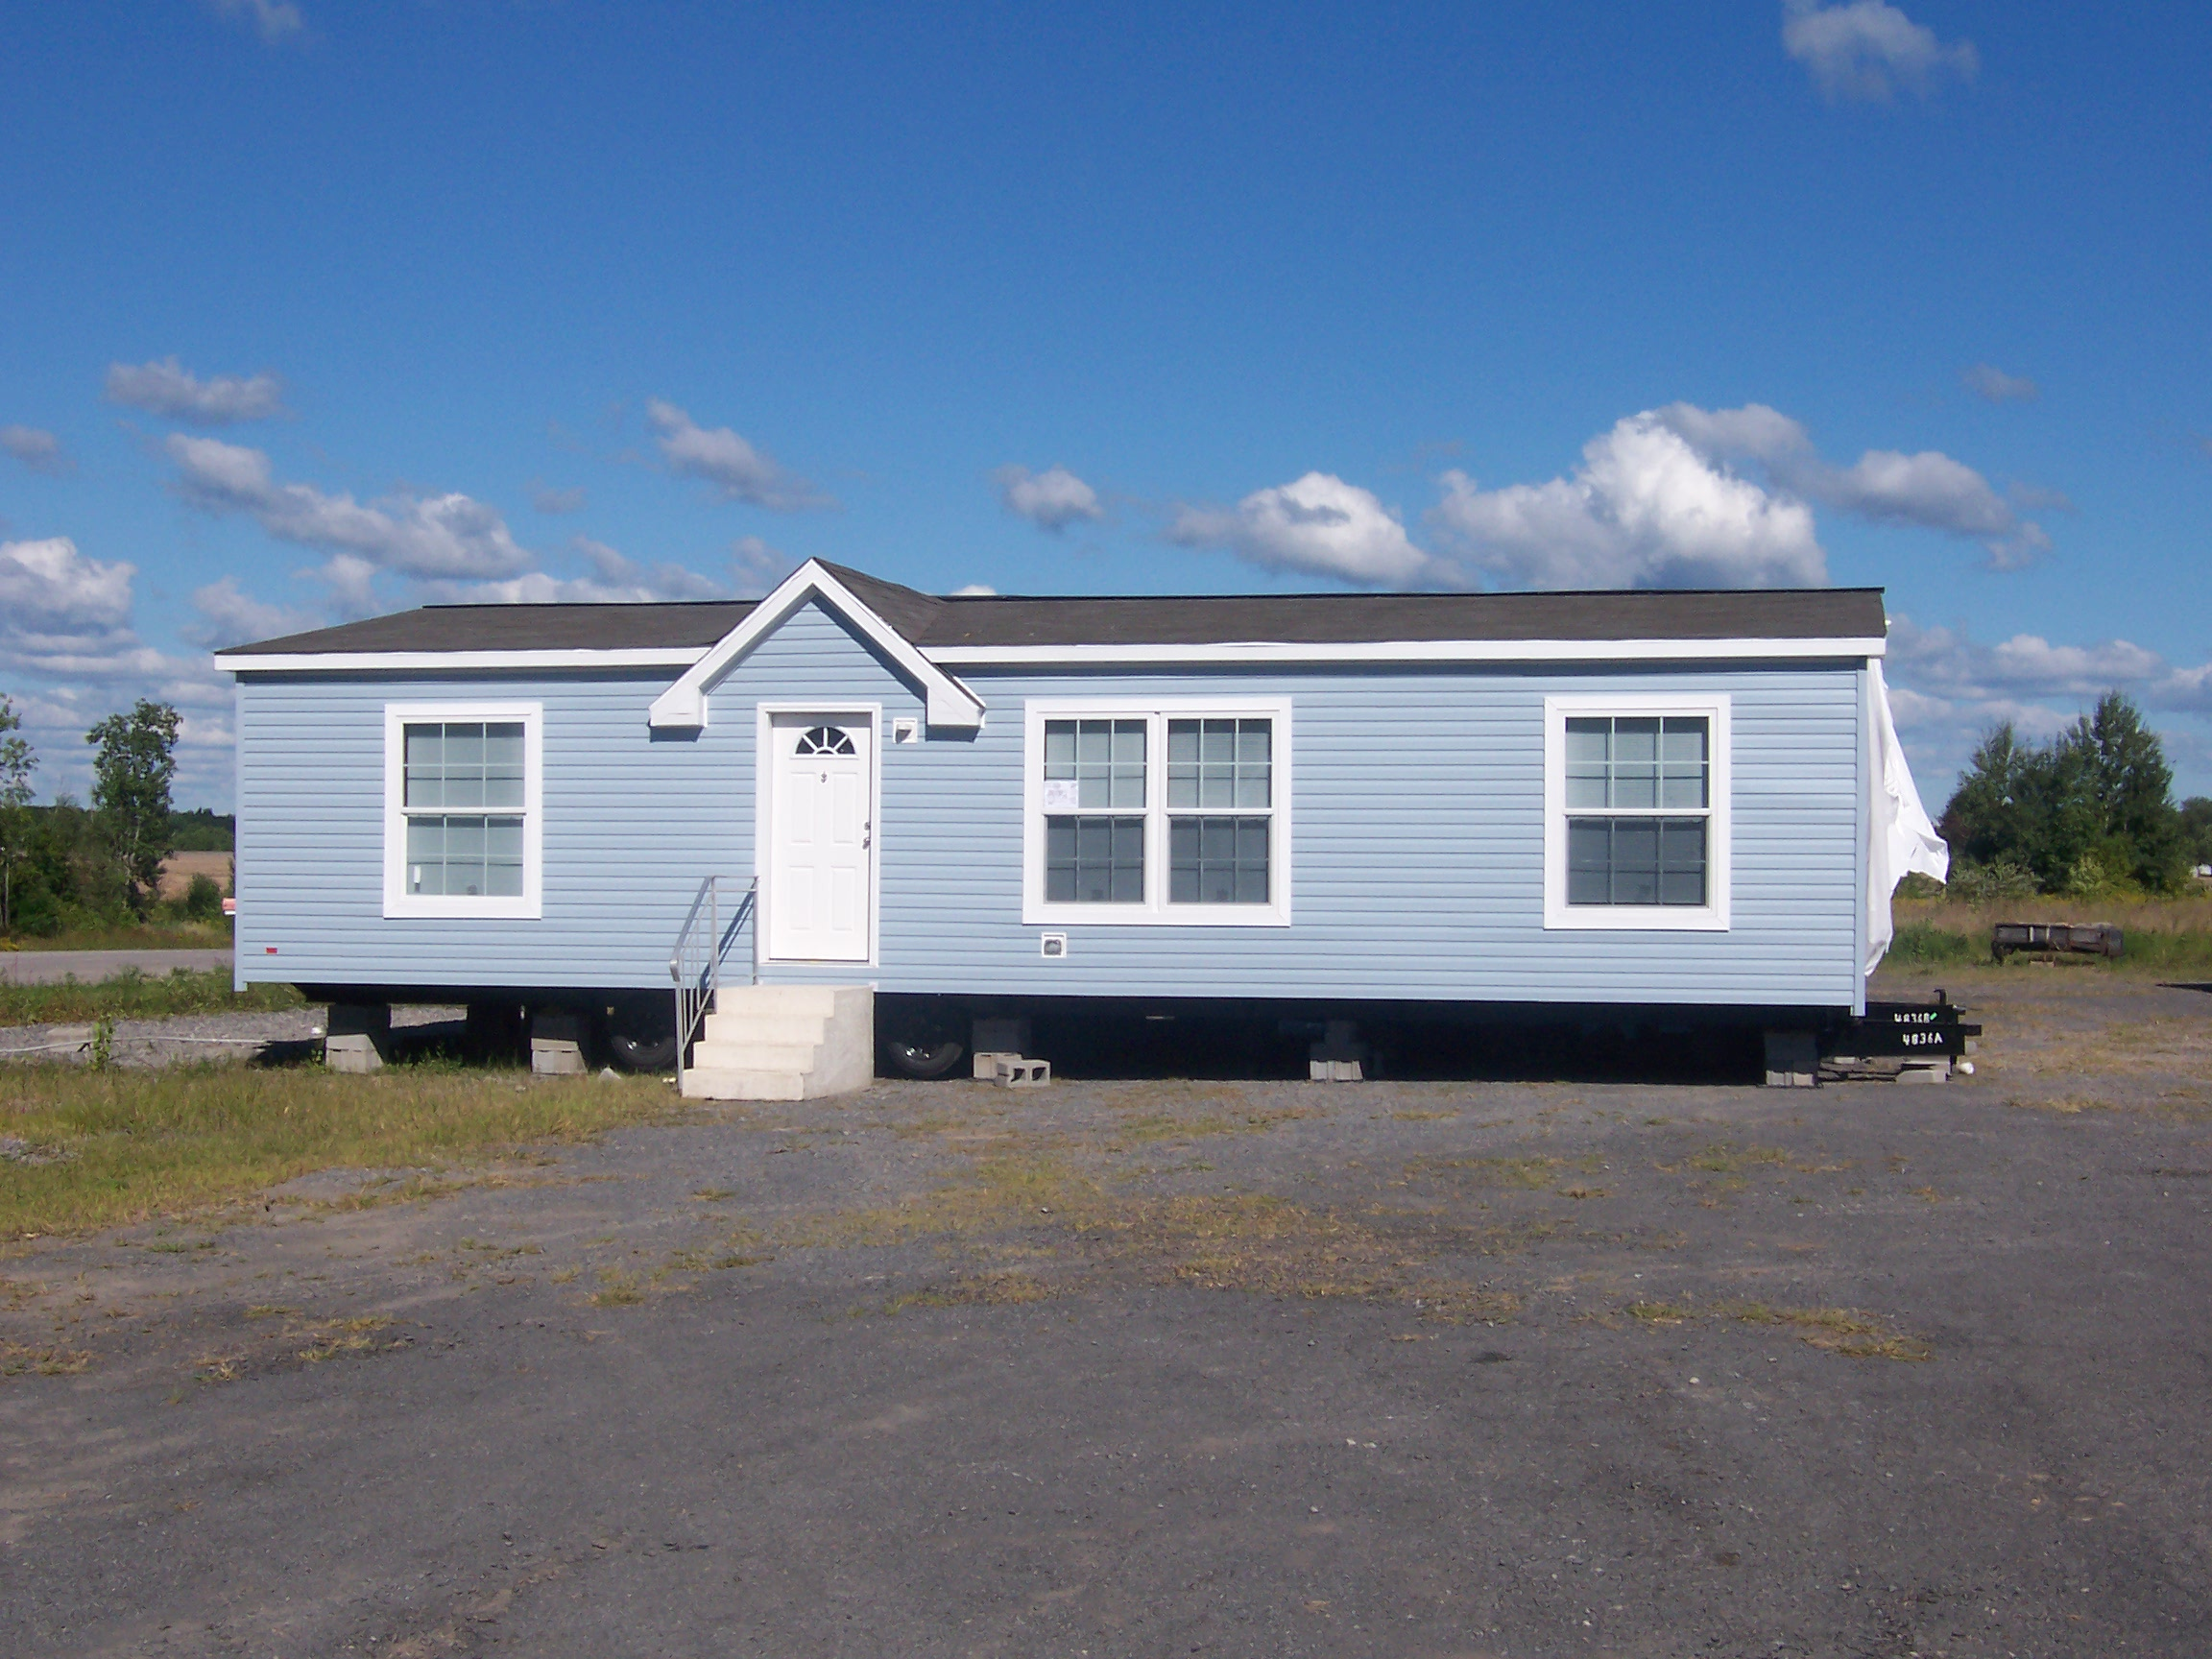 Greentree mobile home repo list - Featured Homes